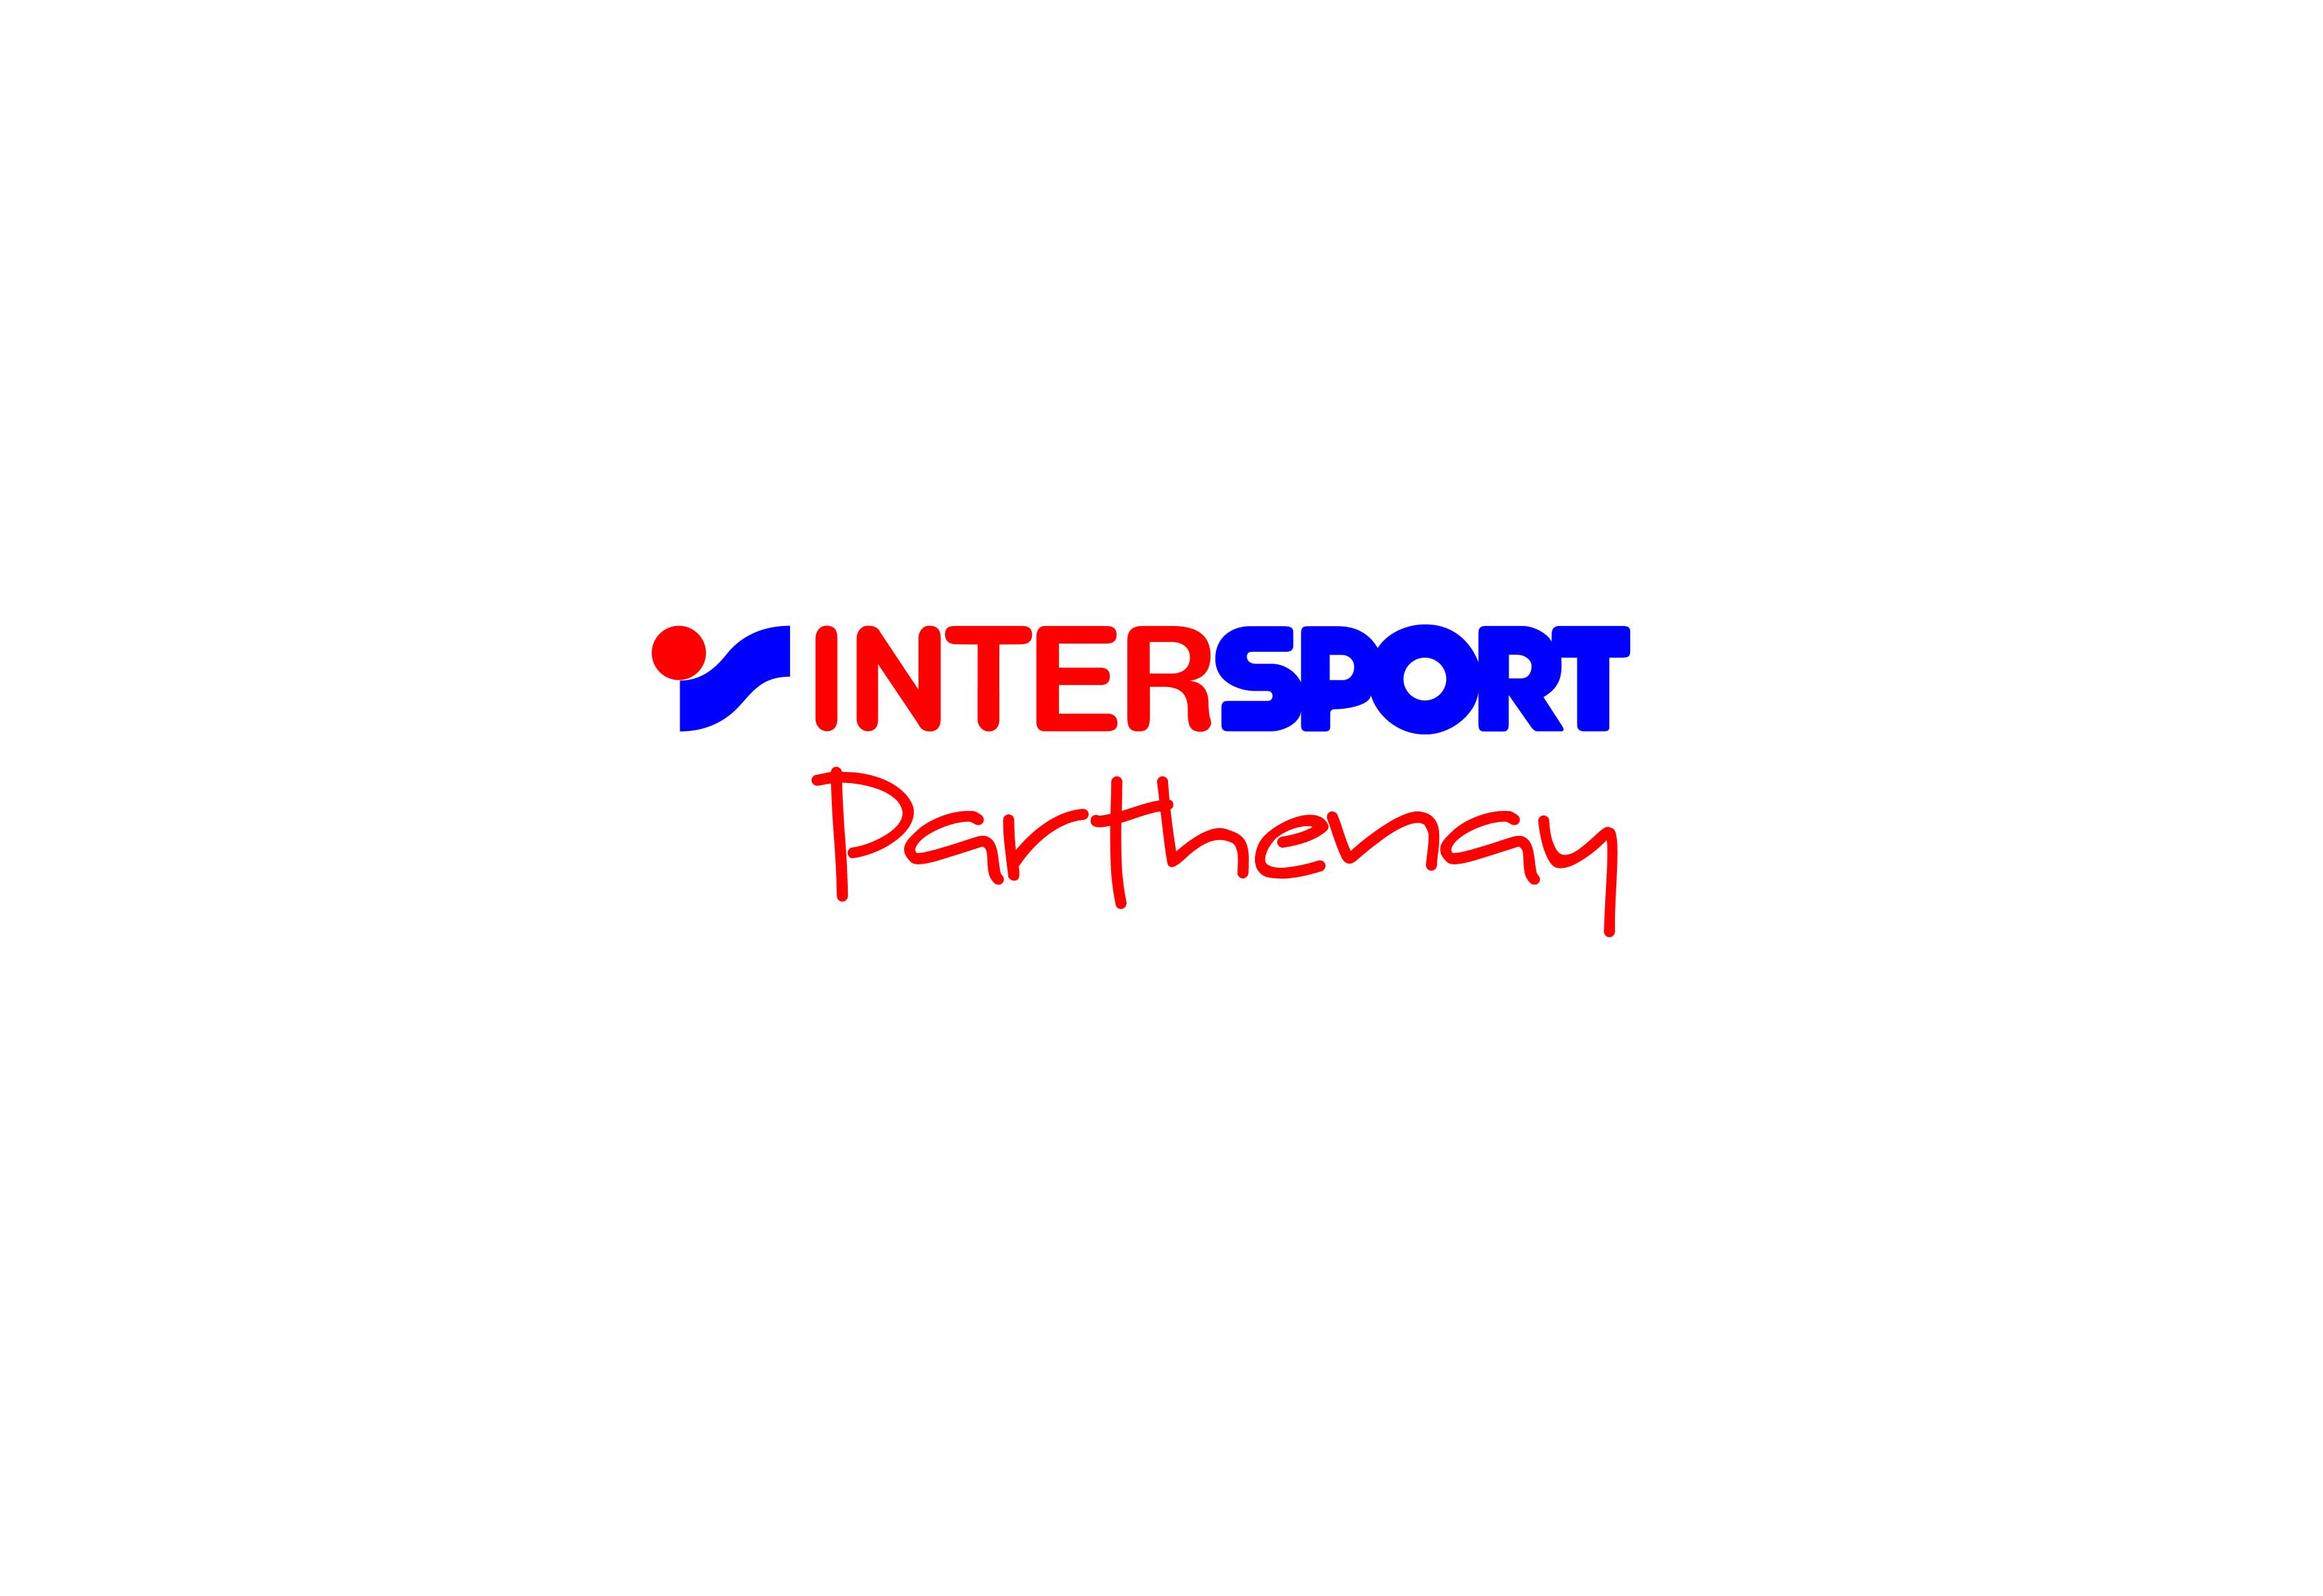 INTERSPORT PARTHENAY